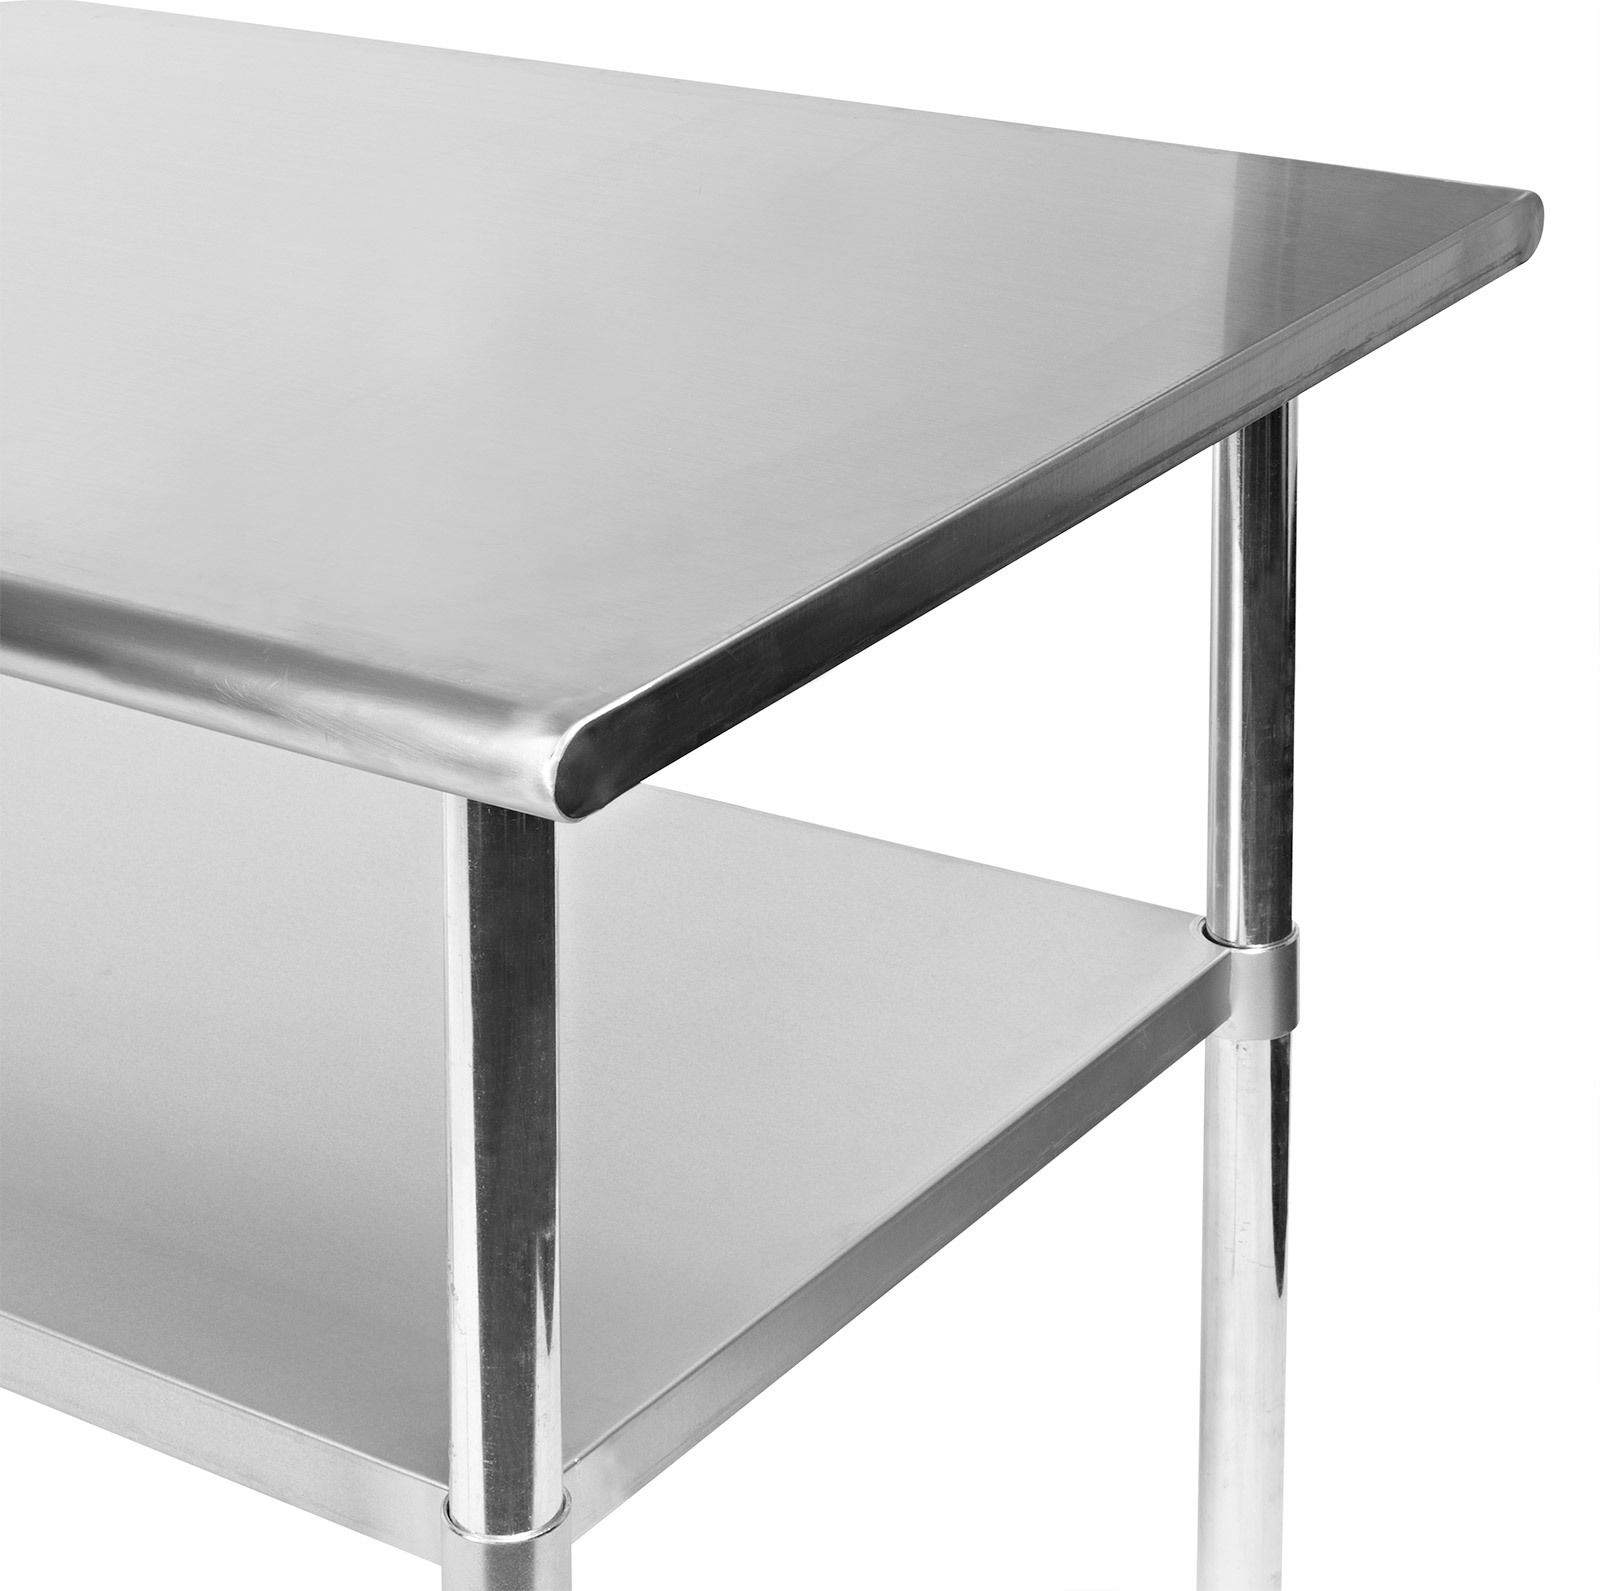 New Stainless Steel Tables 4 Ft 6